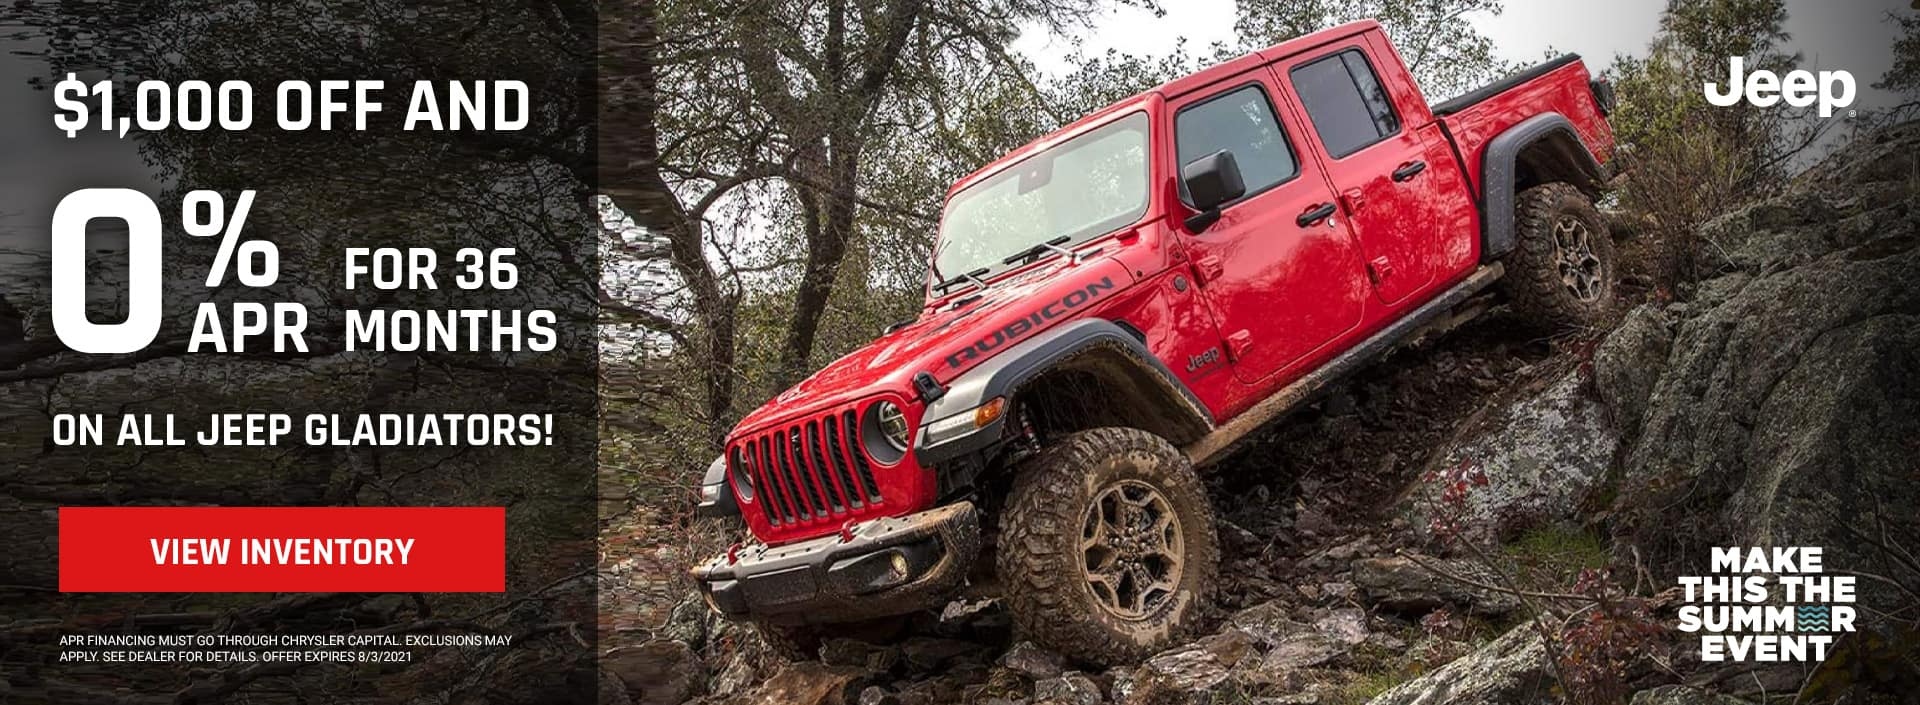 $1000 off and 0% for 36 months on ALL JEEP GLADIATORS!